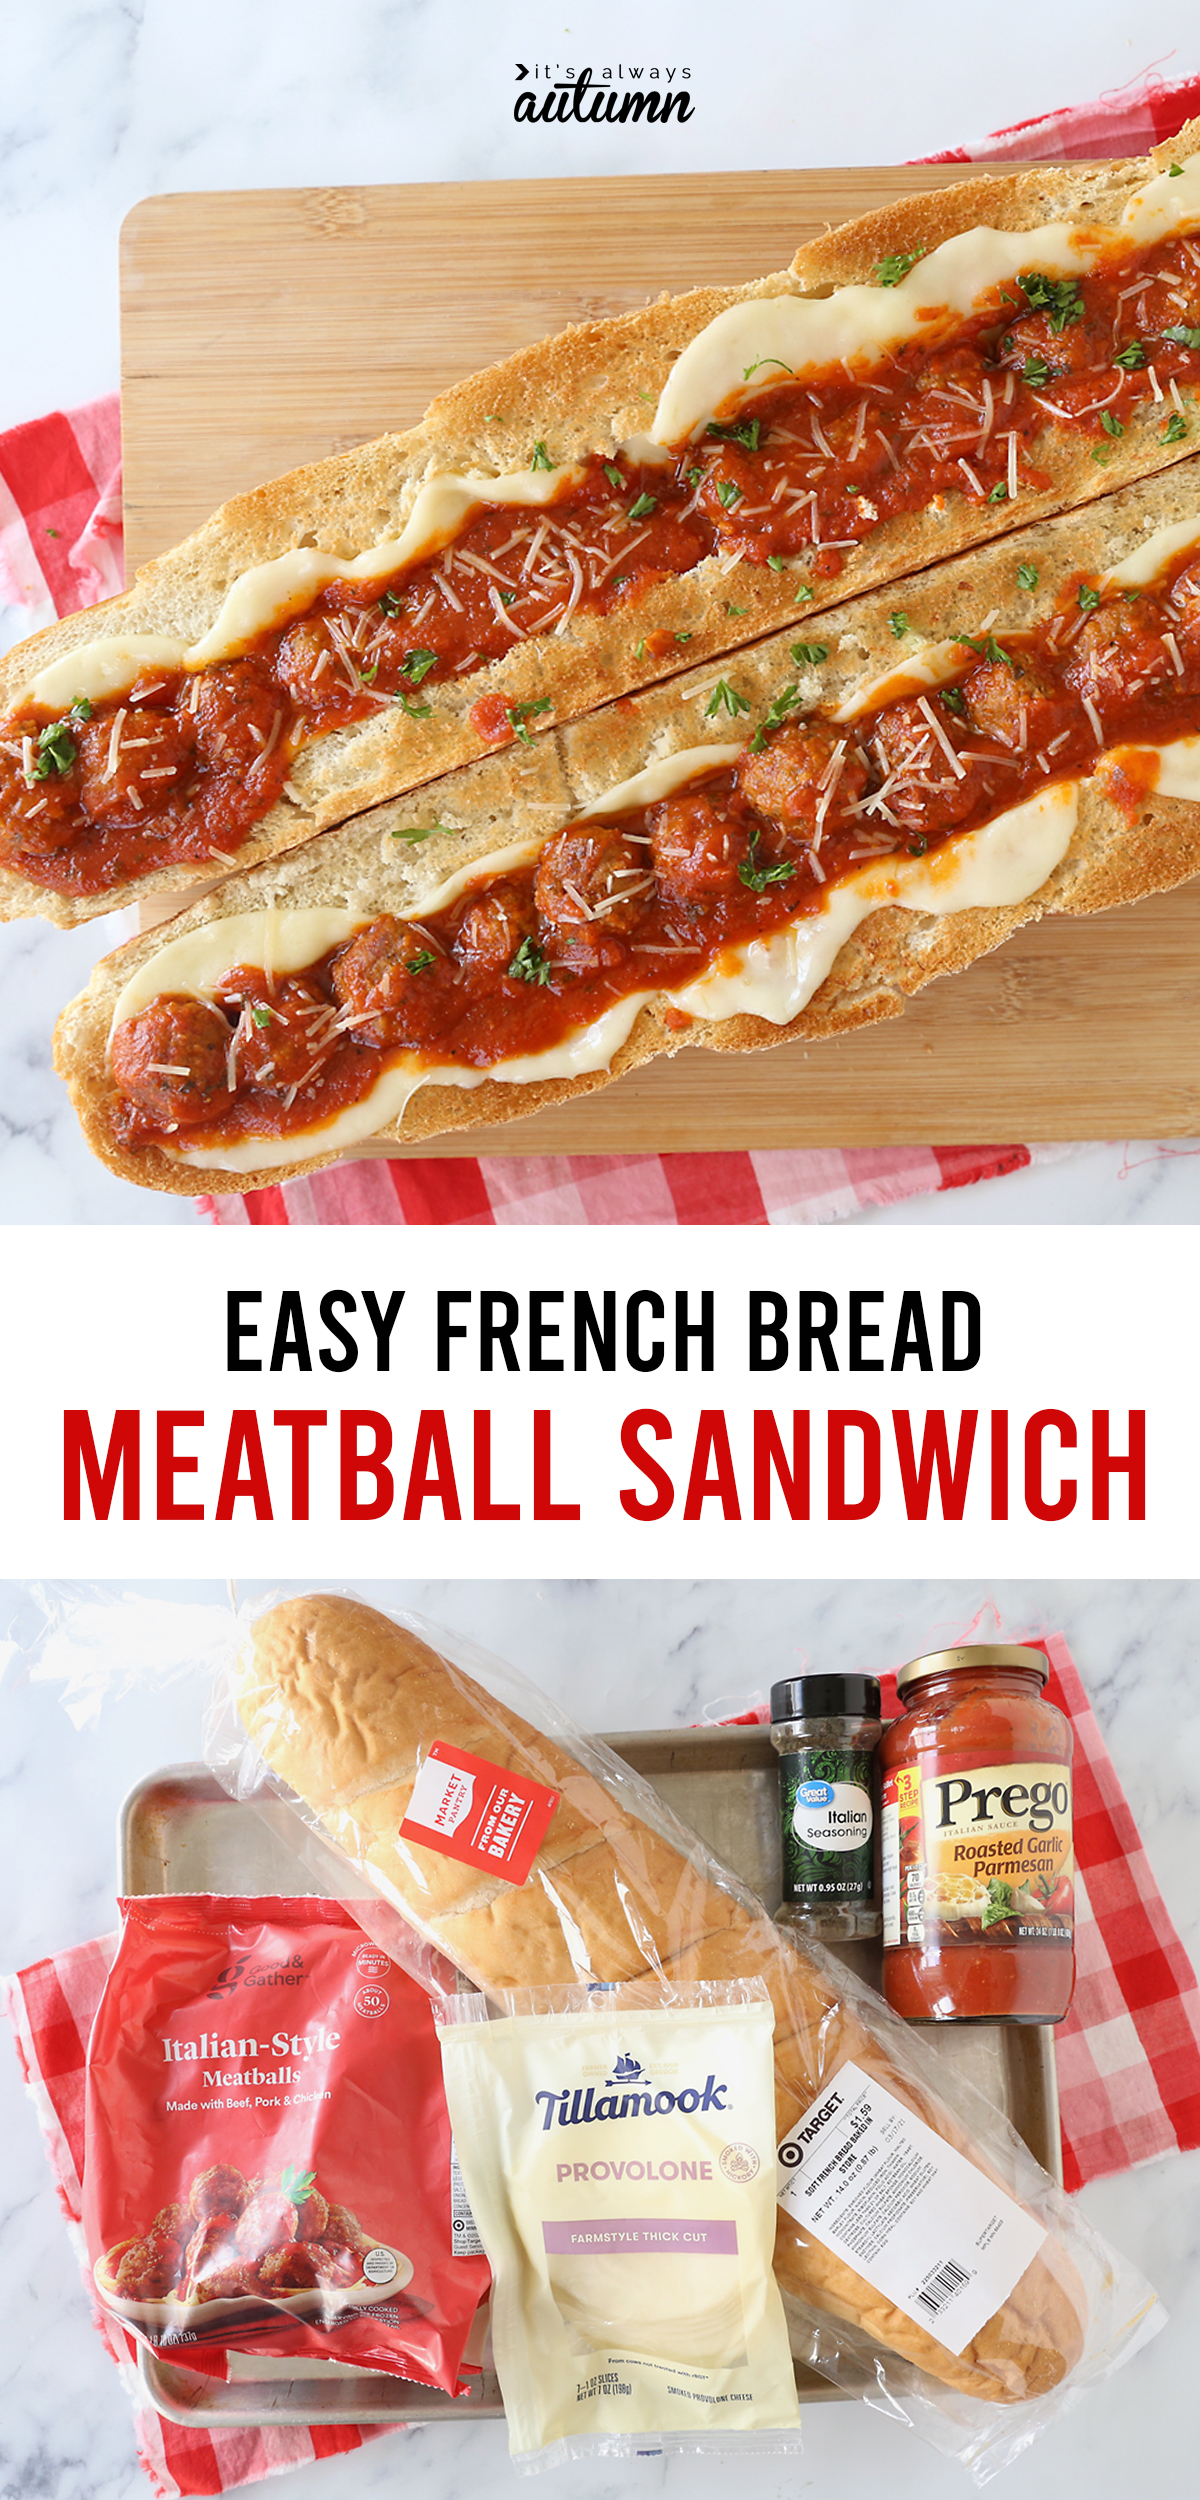 Easy French Bread meatball sandwich and ingredients: french bread, meatballs, spaghetti sauce, provolone cheese, italian seasoning